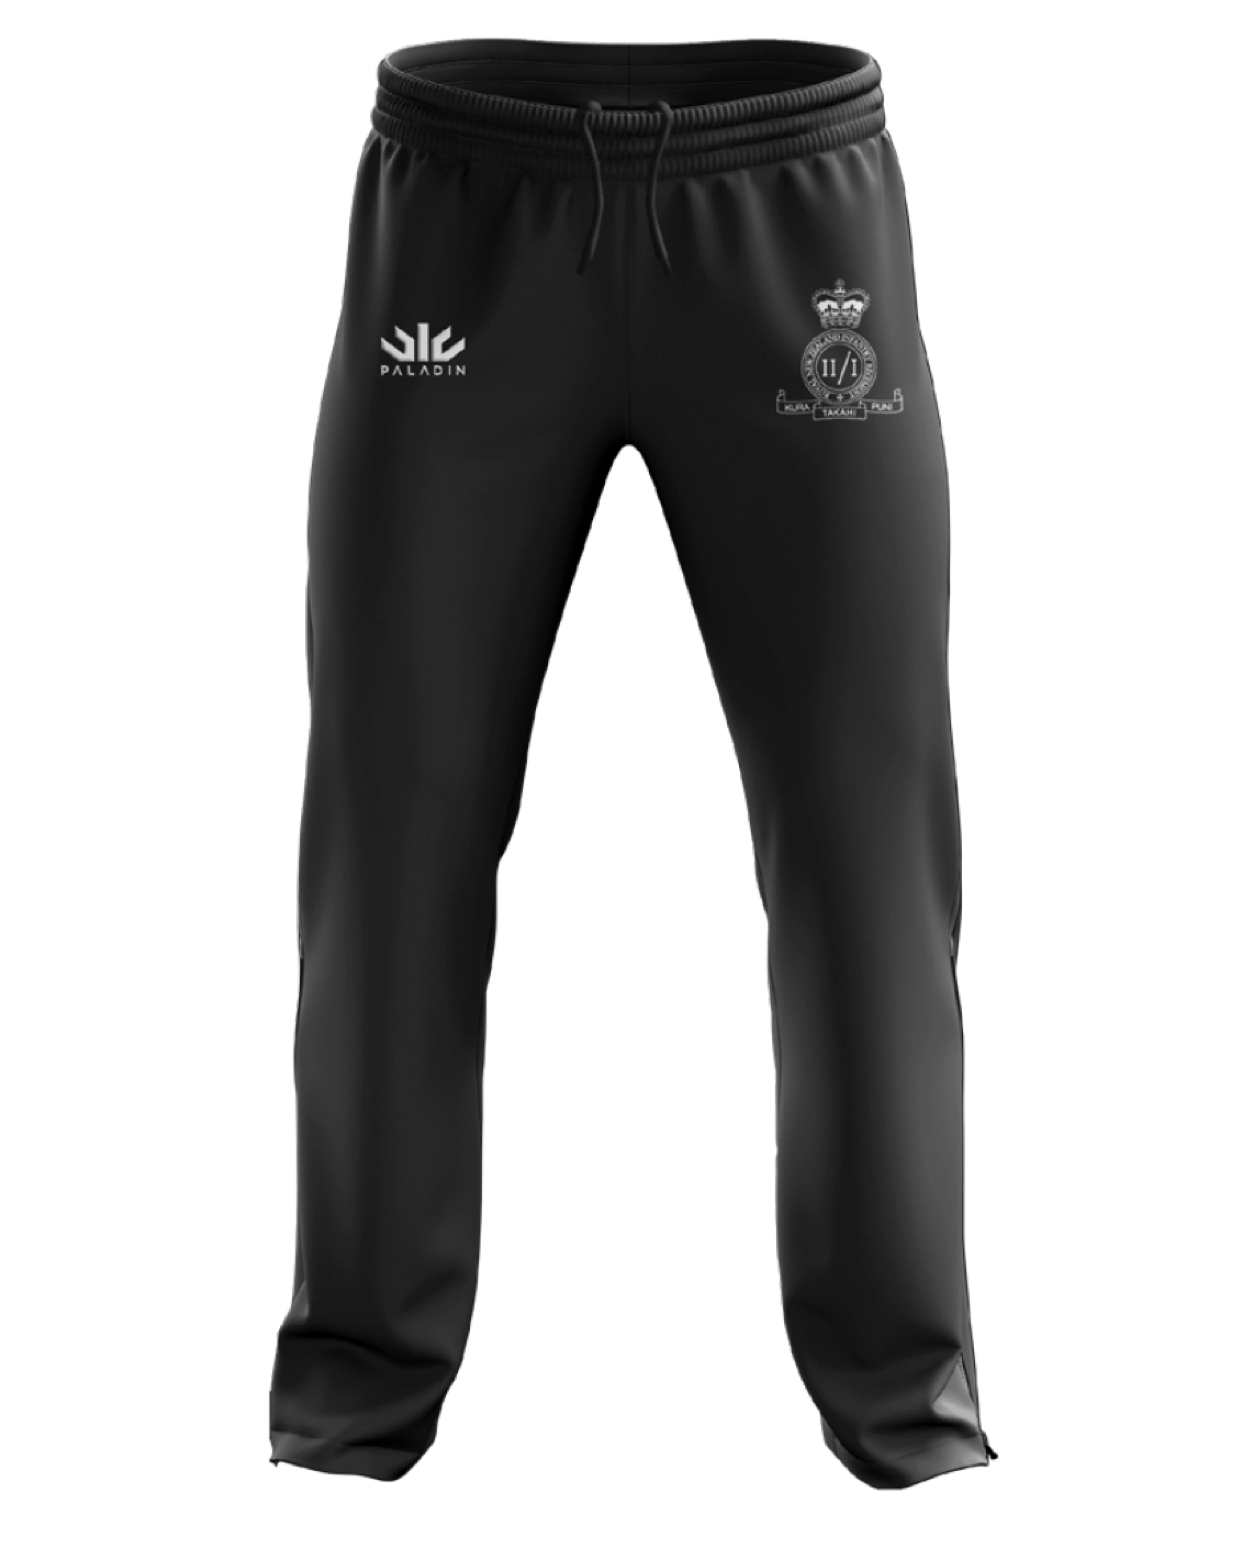 2nd/1st Battalion Tracksuit pants